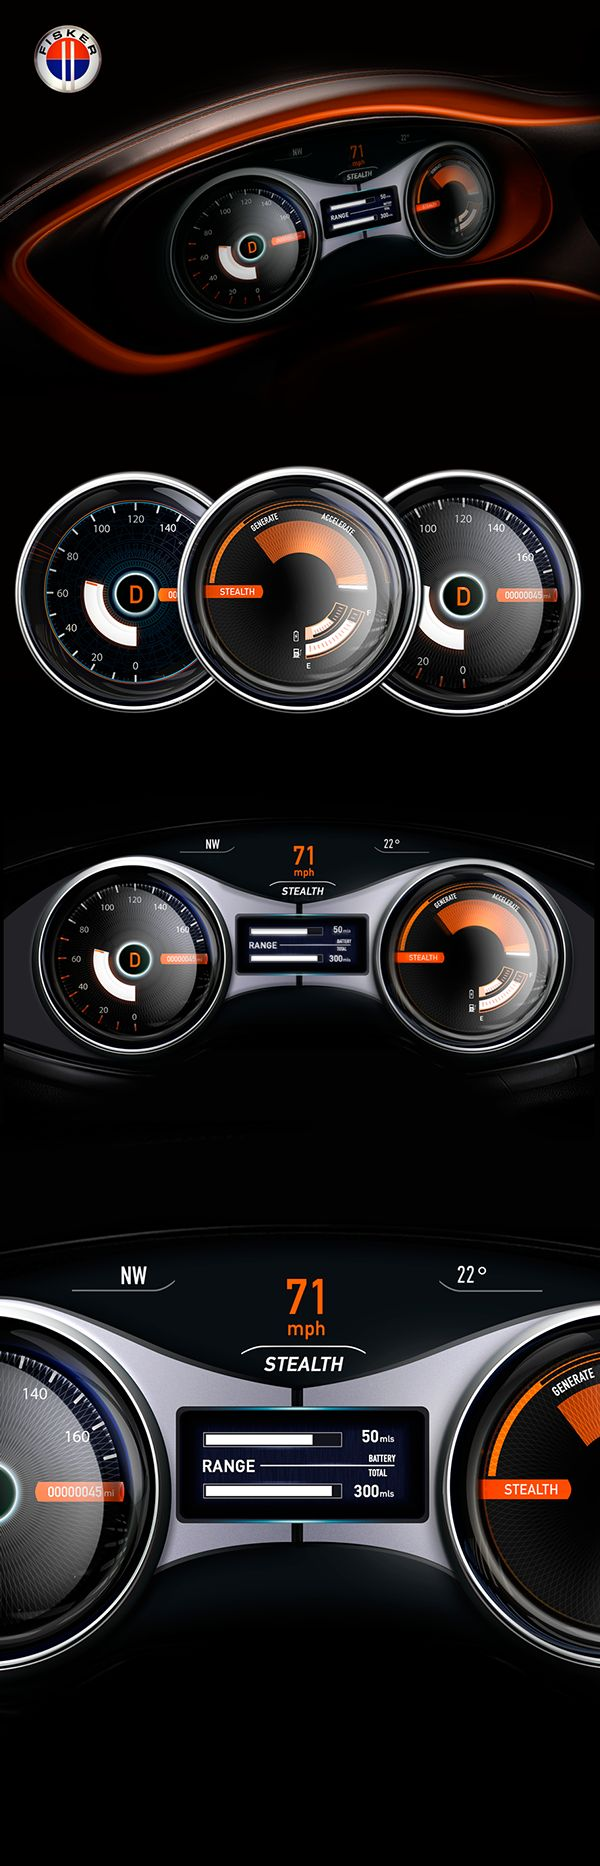 302 best cars images on pinterest cars car drawings and vintage cars instrument cluster karma rebuild on behance fandeluxe Image collections